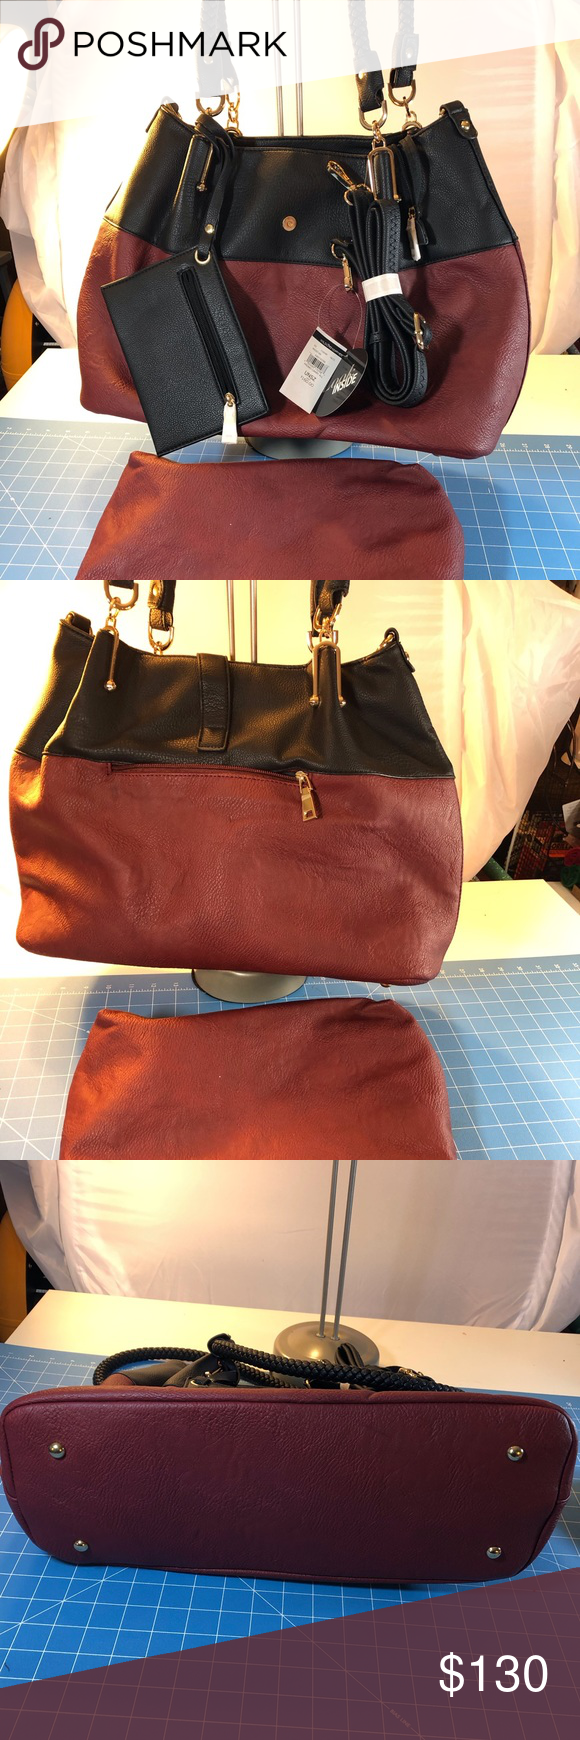 WILSON Leather 3 in 1 carry all Handbag NWT Wilson Leather